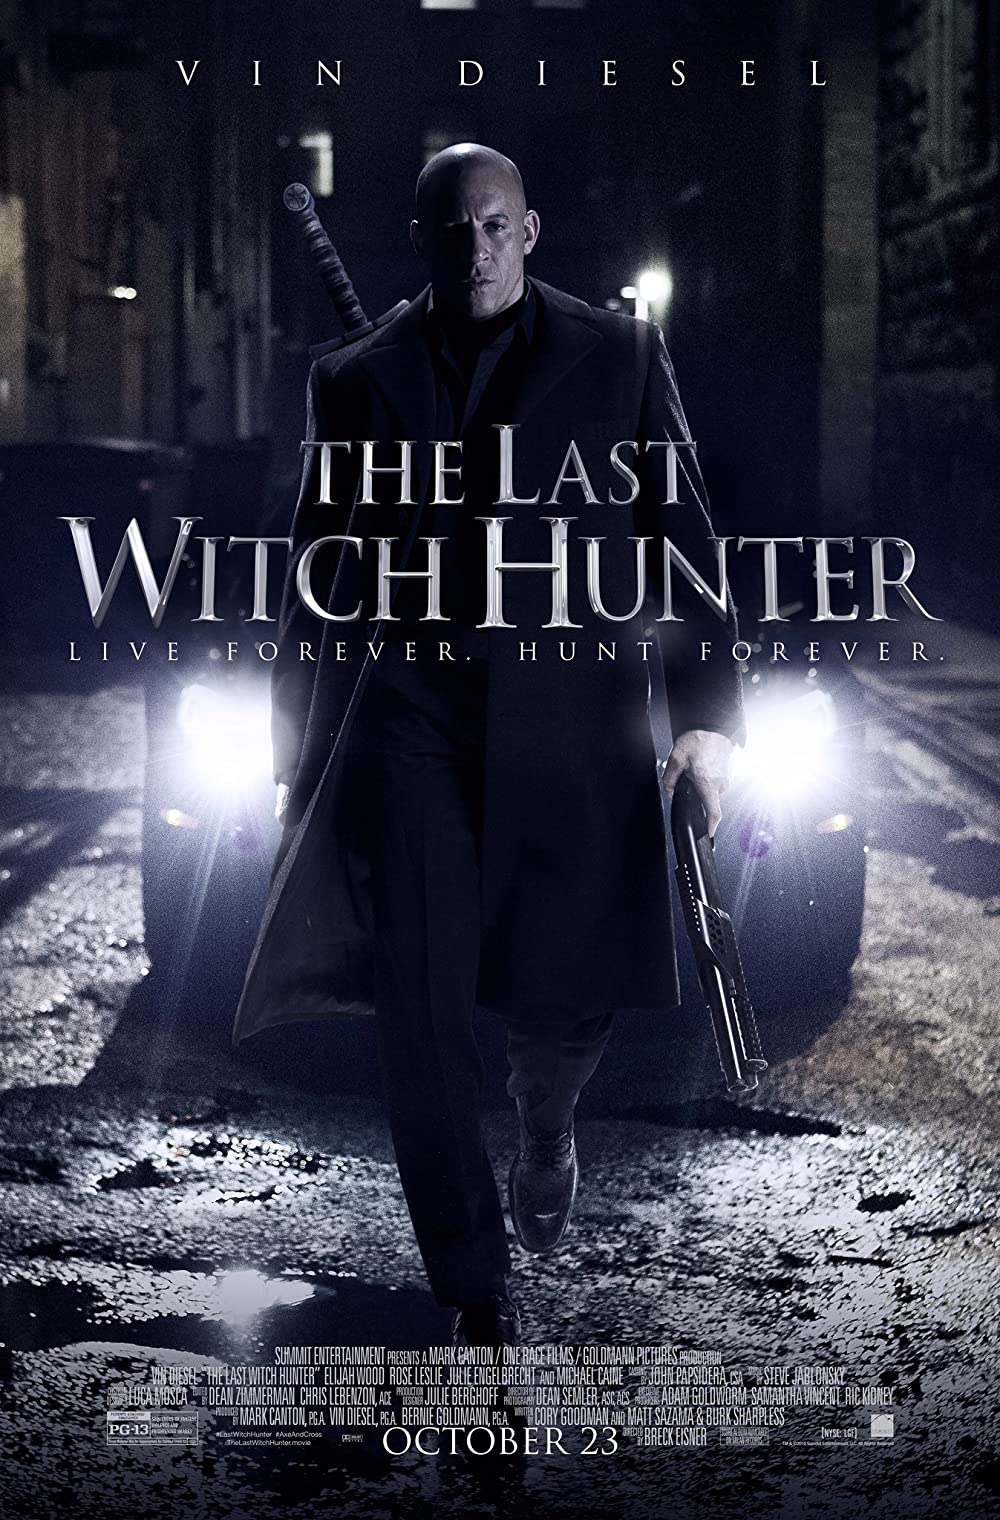 The Last Witch Hunter 2015 Dual Audio 1080p BluRay [Hindi ORG + English] ESubs